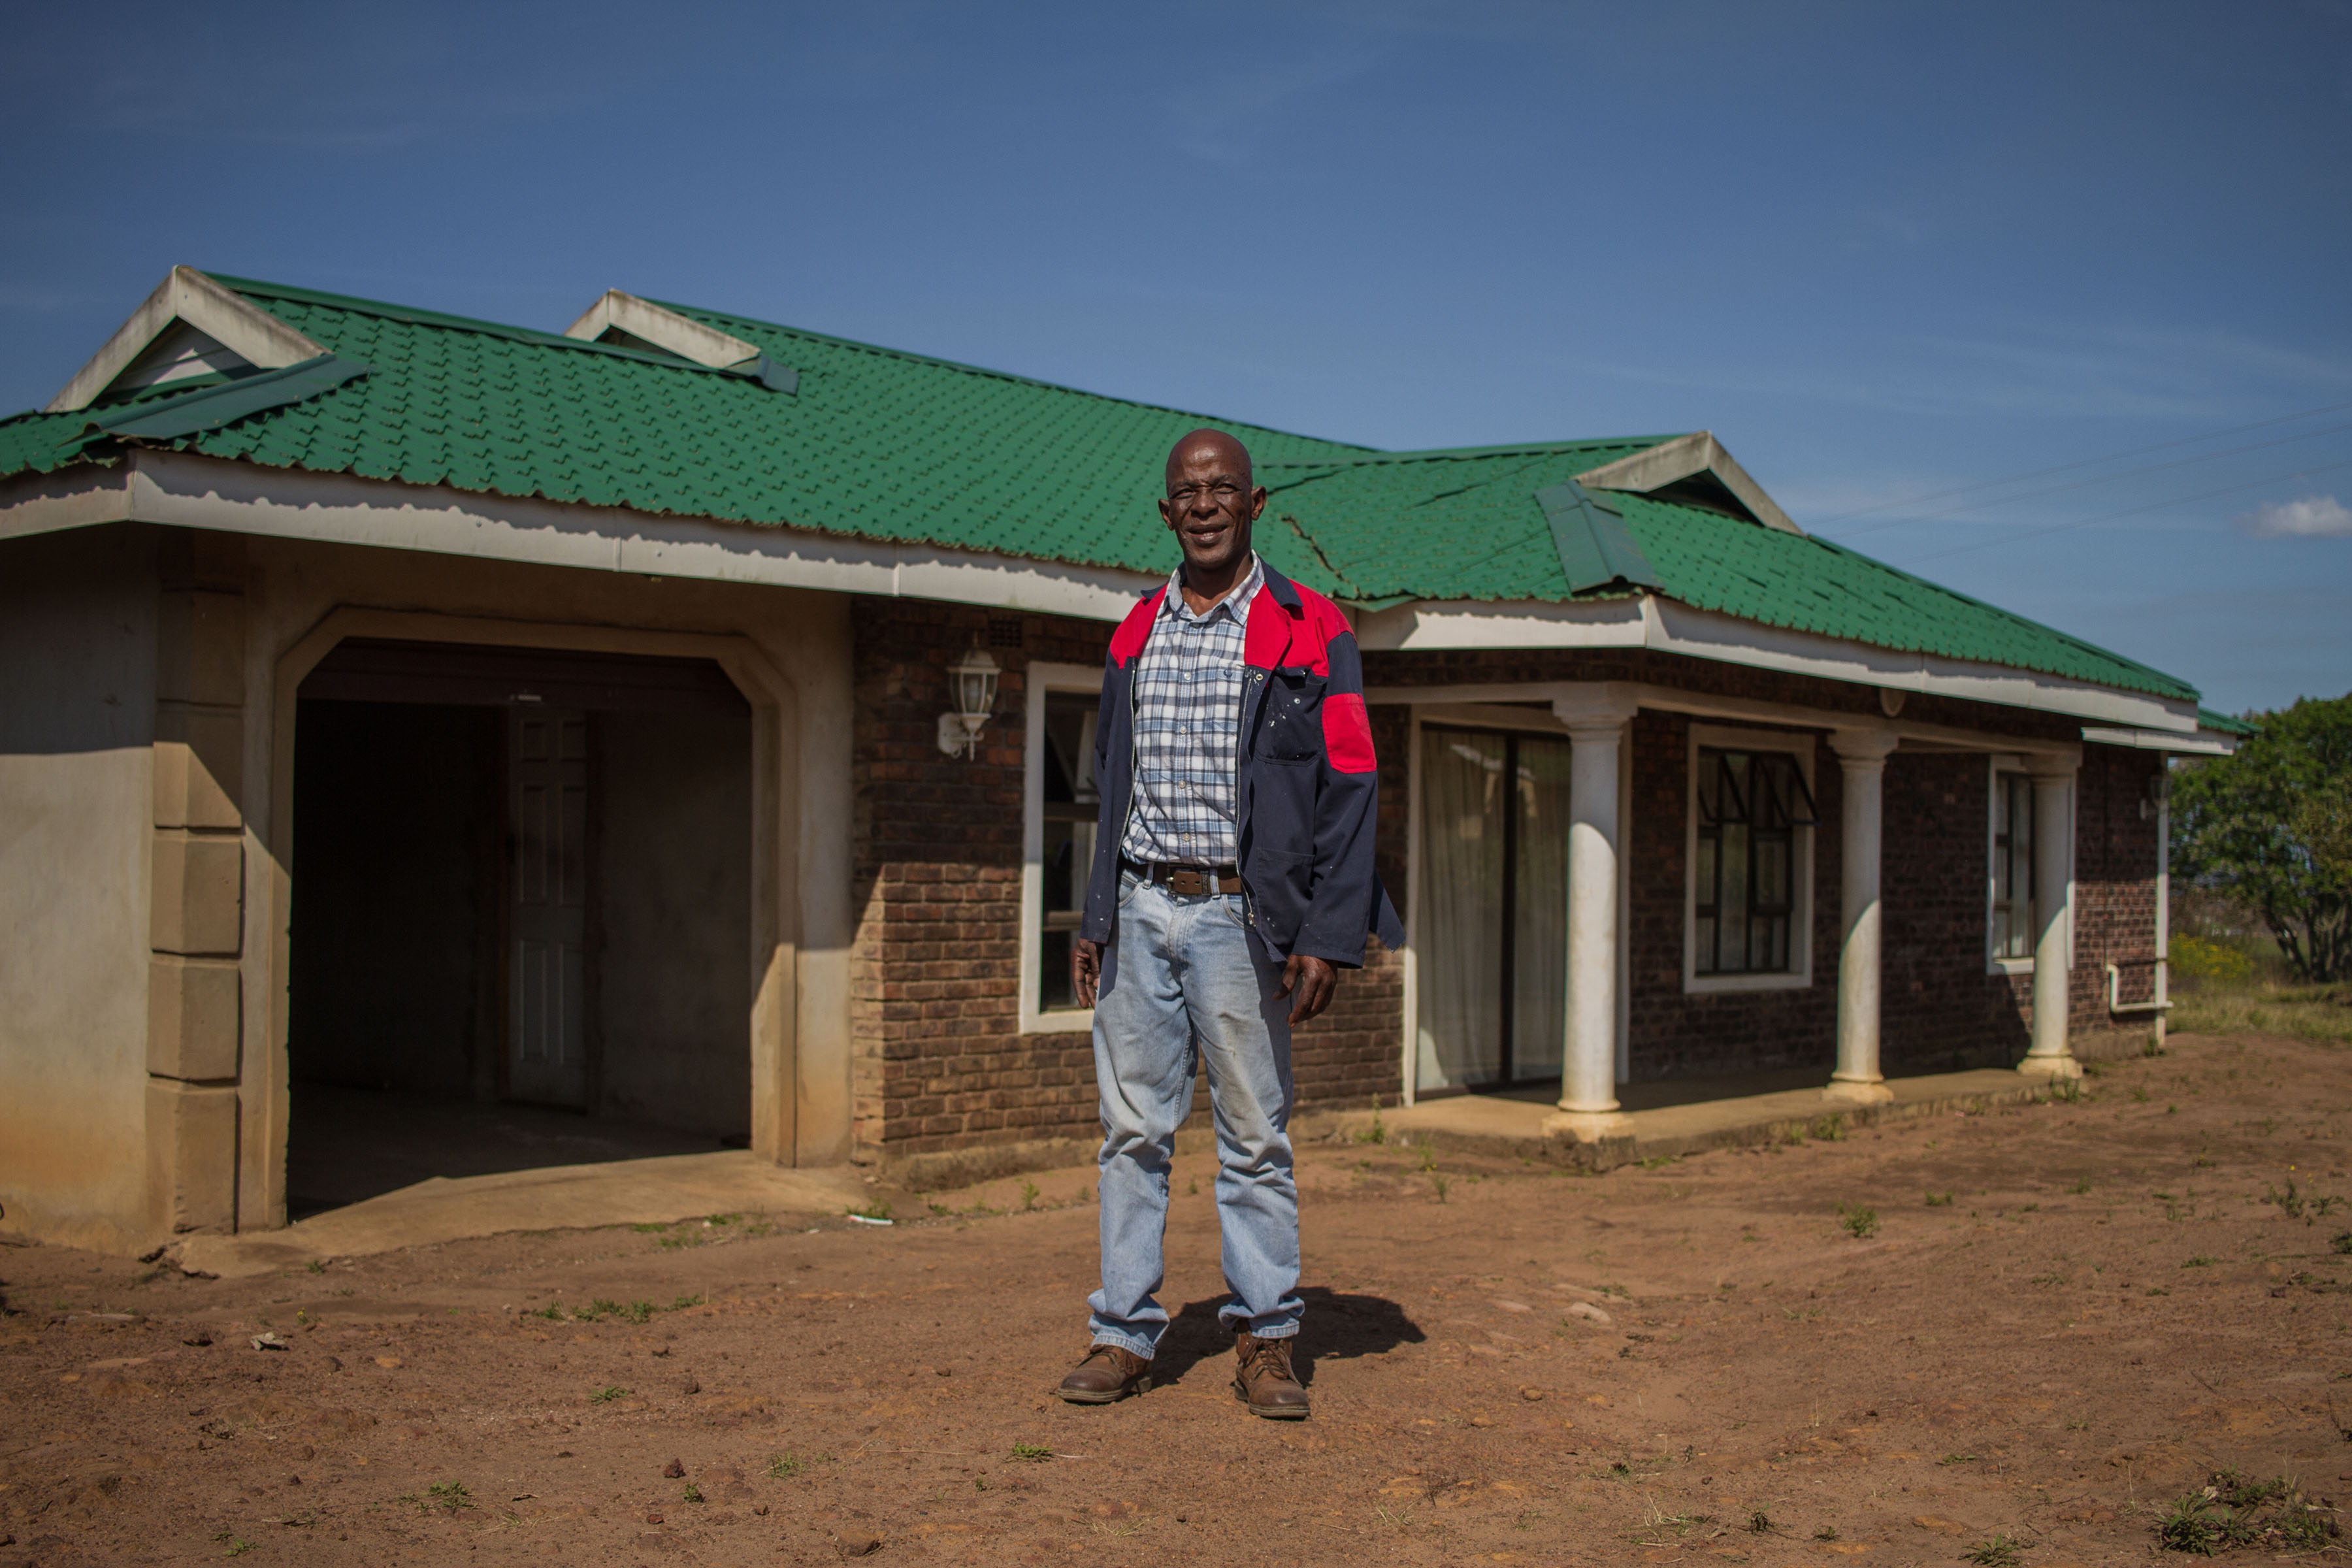 2 October 2019: Zakhele Nkwankwa outside the house he built on land for which he had permission to occupy rights, that the Ingonyama Trust then leased to him.